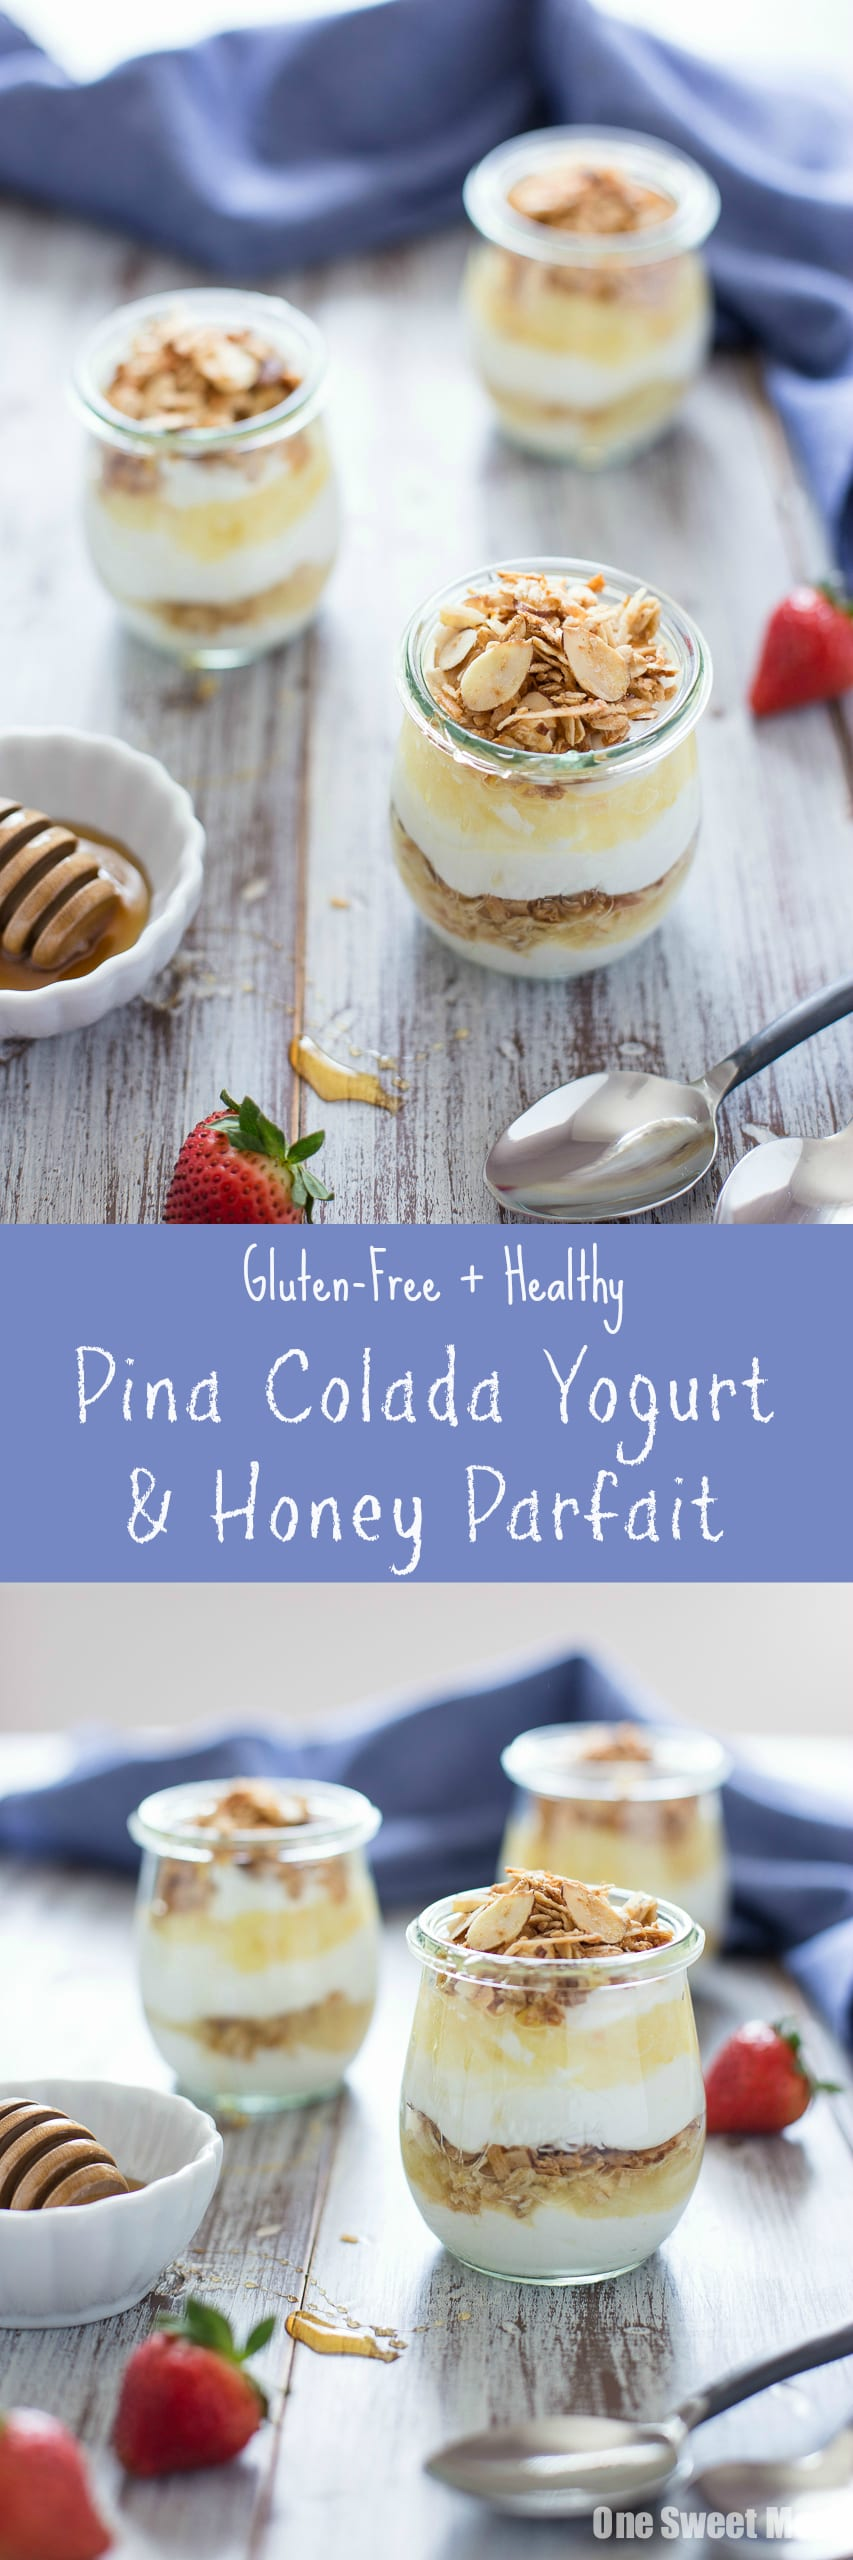 Pina Colada Yogurt and Honey Parfait: This gluten-free, healthy breakfast parfait is layered with protein-packed Greek yogurt, crunchy granola, crushed pineapple, and a drizzle of sweet honey.